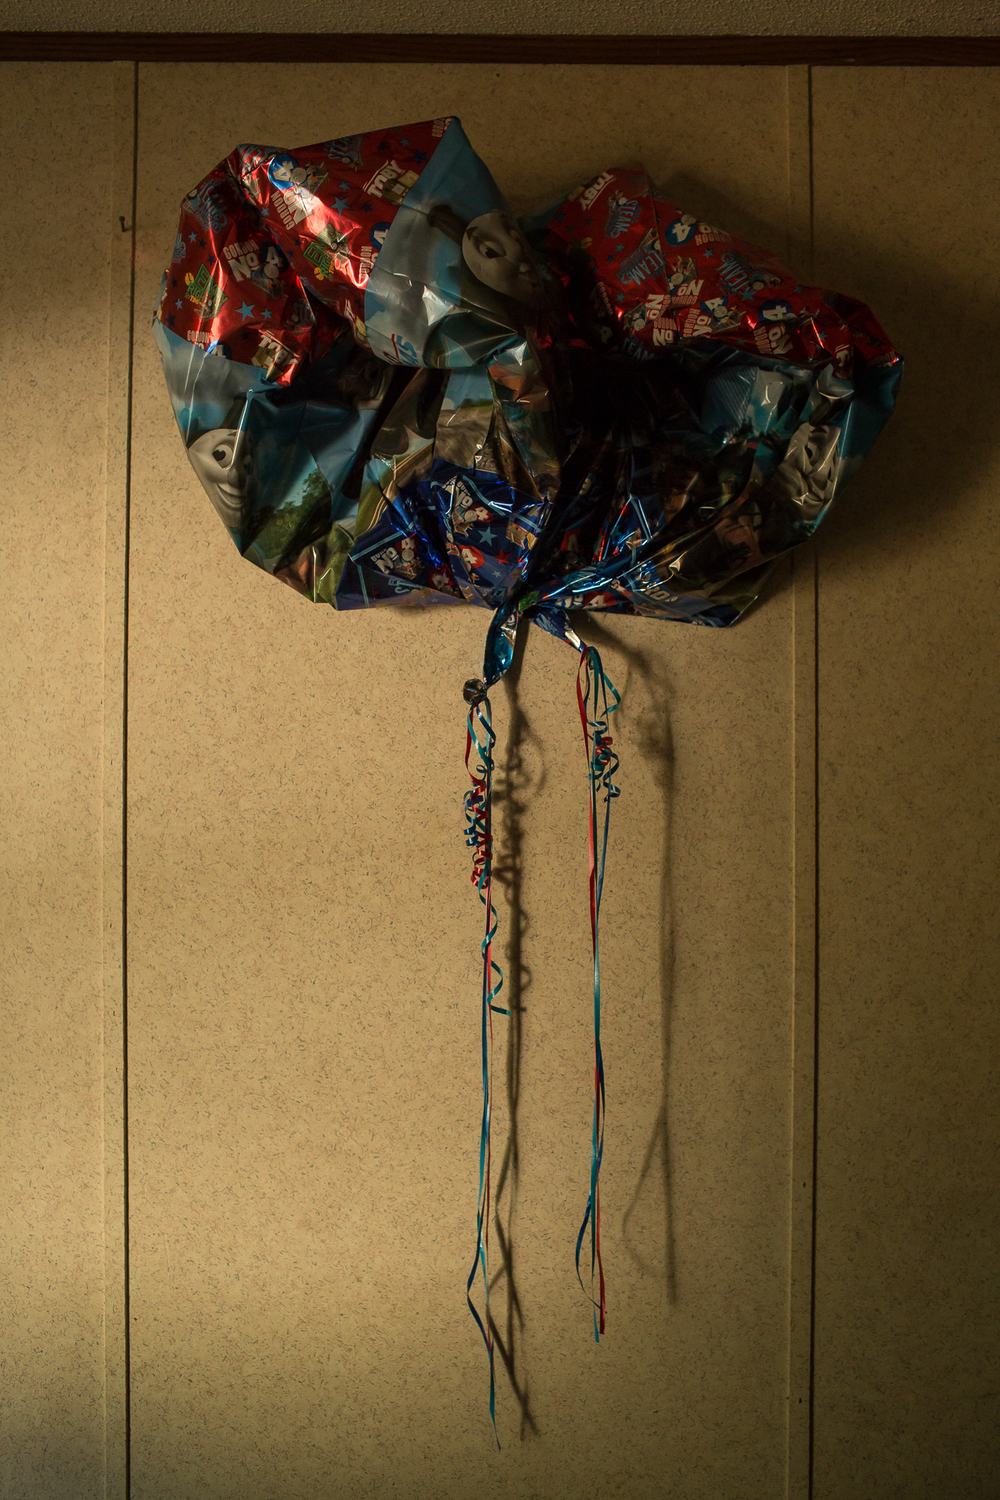 Deflated balloons in the trailer where Betty Mungin, 55; Alexis Mungin, 29 and her unborn twins; and Armani Mungin, 8 were shot and killed in May 2016.